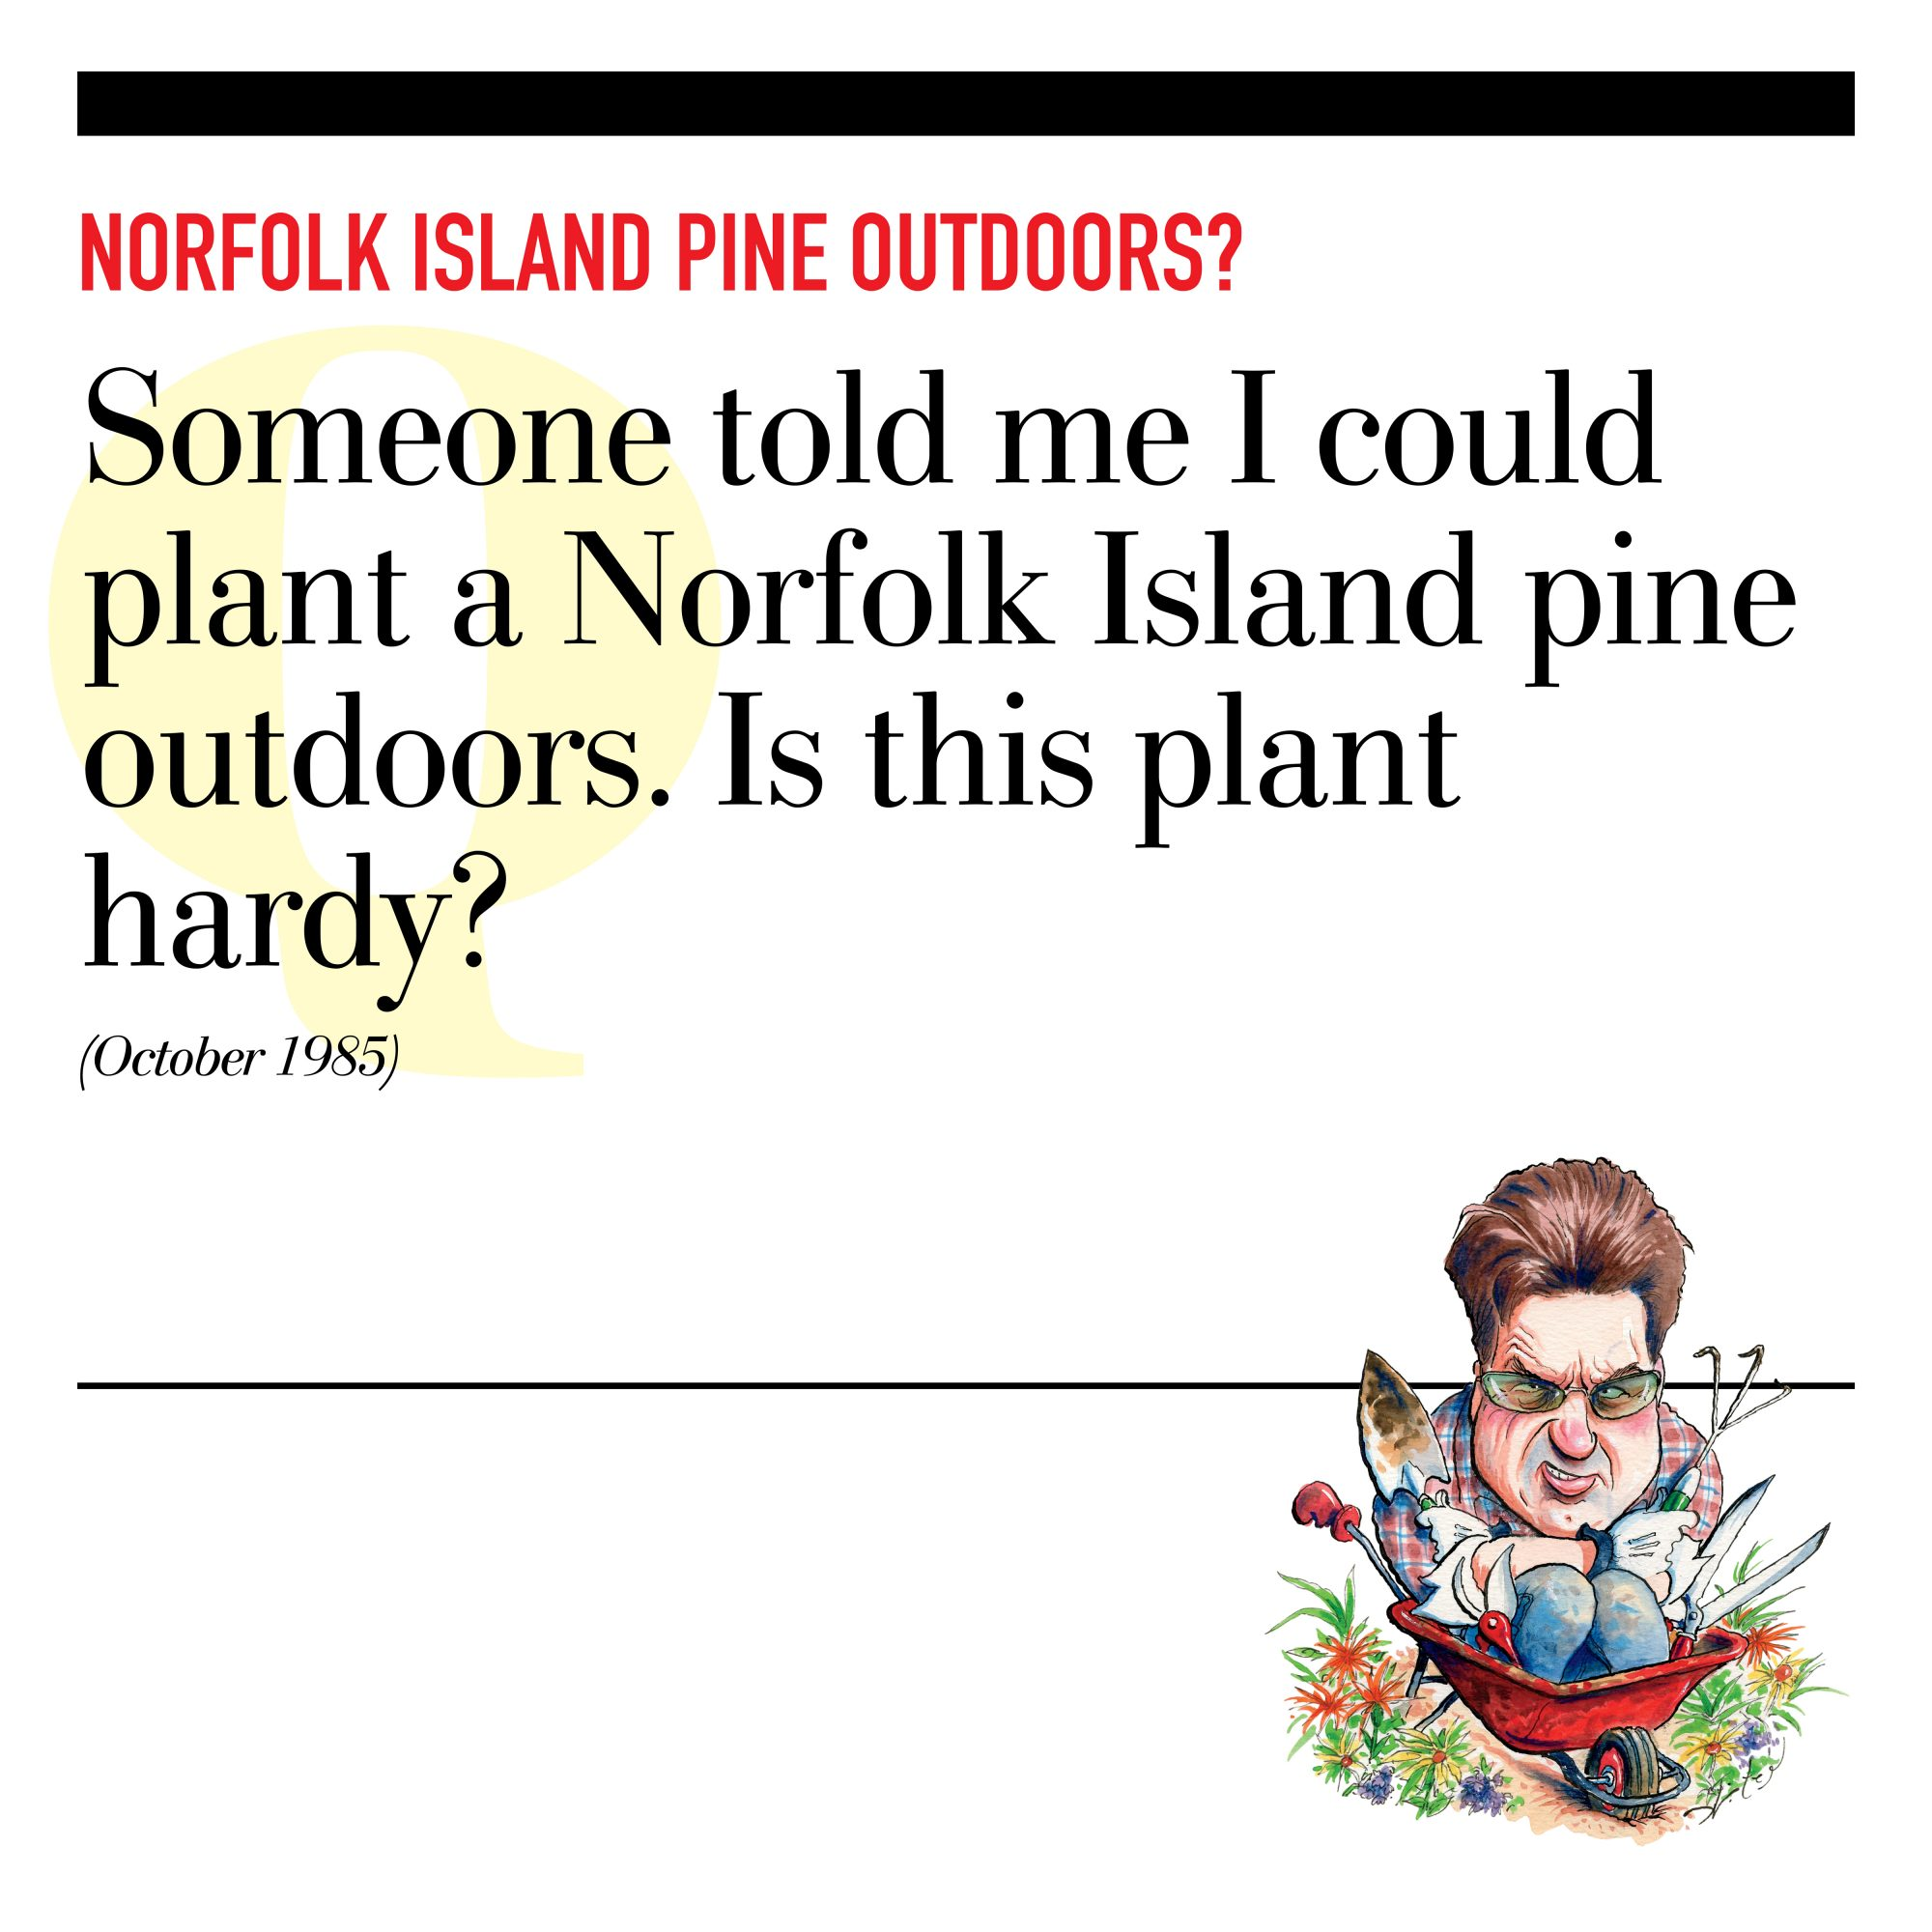 Norfolk Island Pine Outdoors?